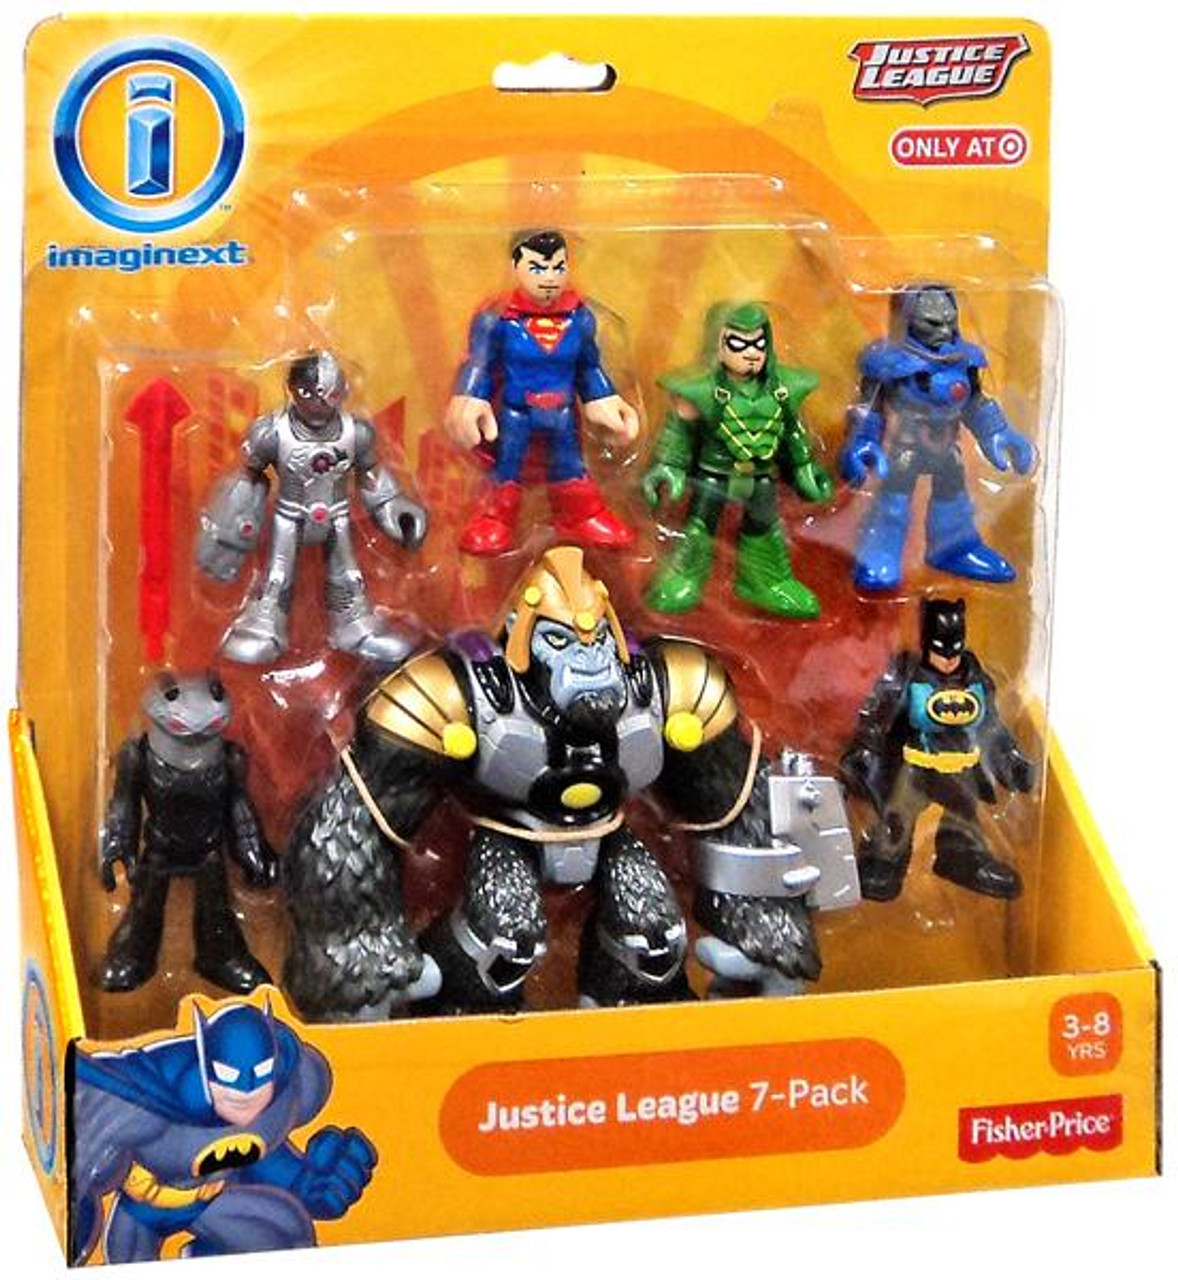 Imaginext Dc Super Friends Cyborg Superman Figure New From Black Flash Pack Toys Hobbies Fisher Price